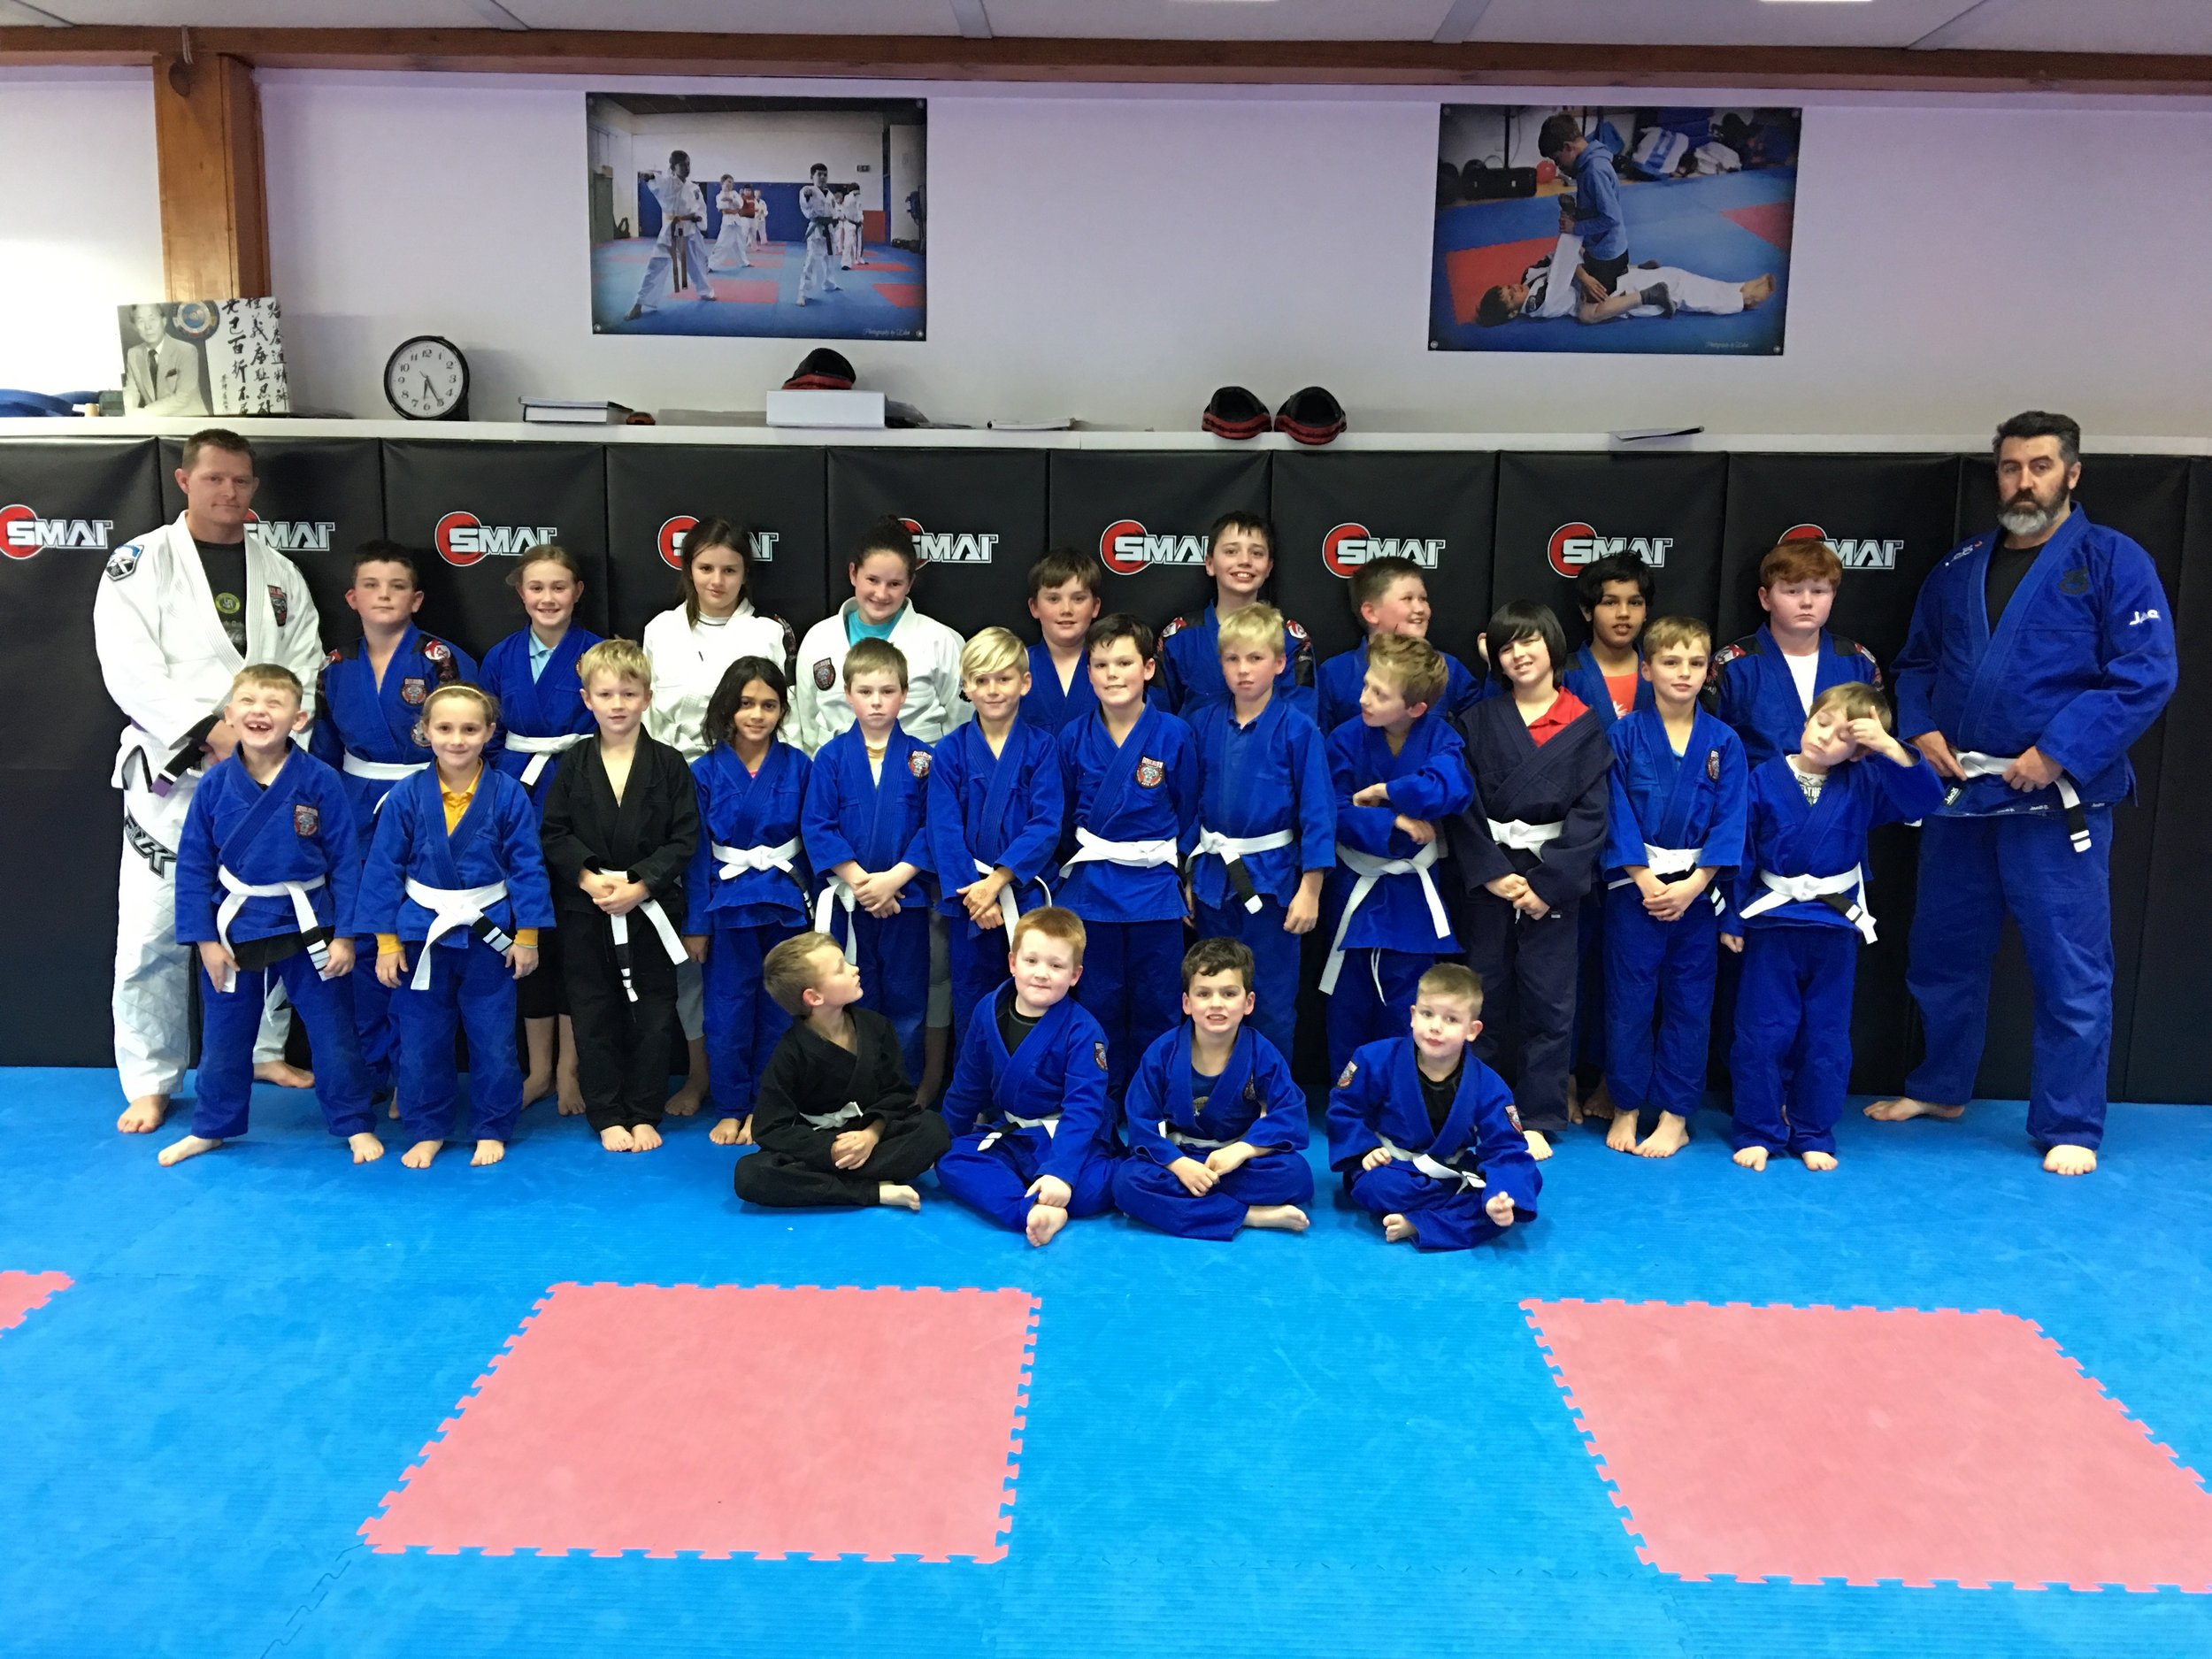 Our kids Bjj or grappling program doing an amazing job progressing very well after a recent grading